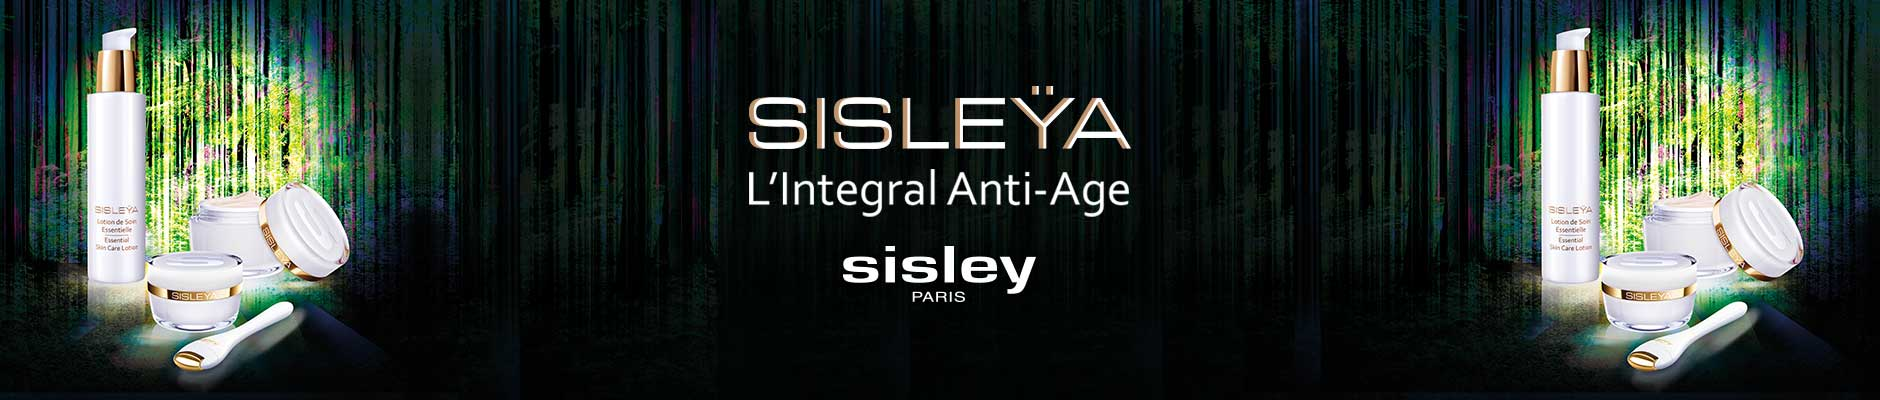 Sisleya L'integral anti-age, Sisley paris